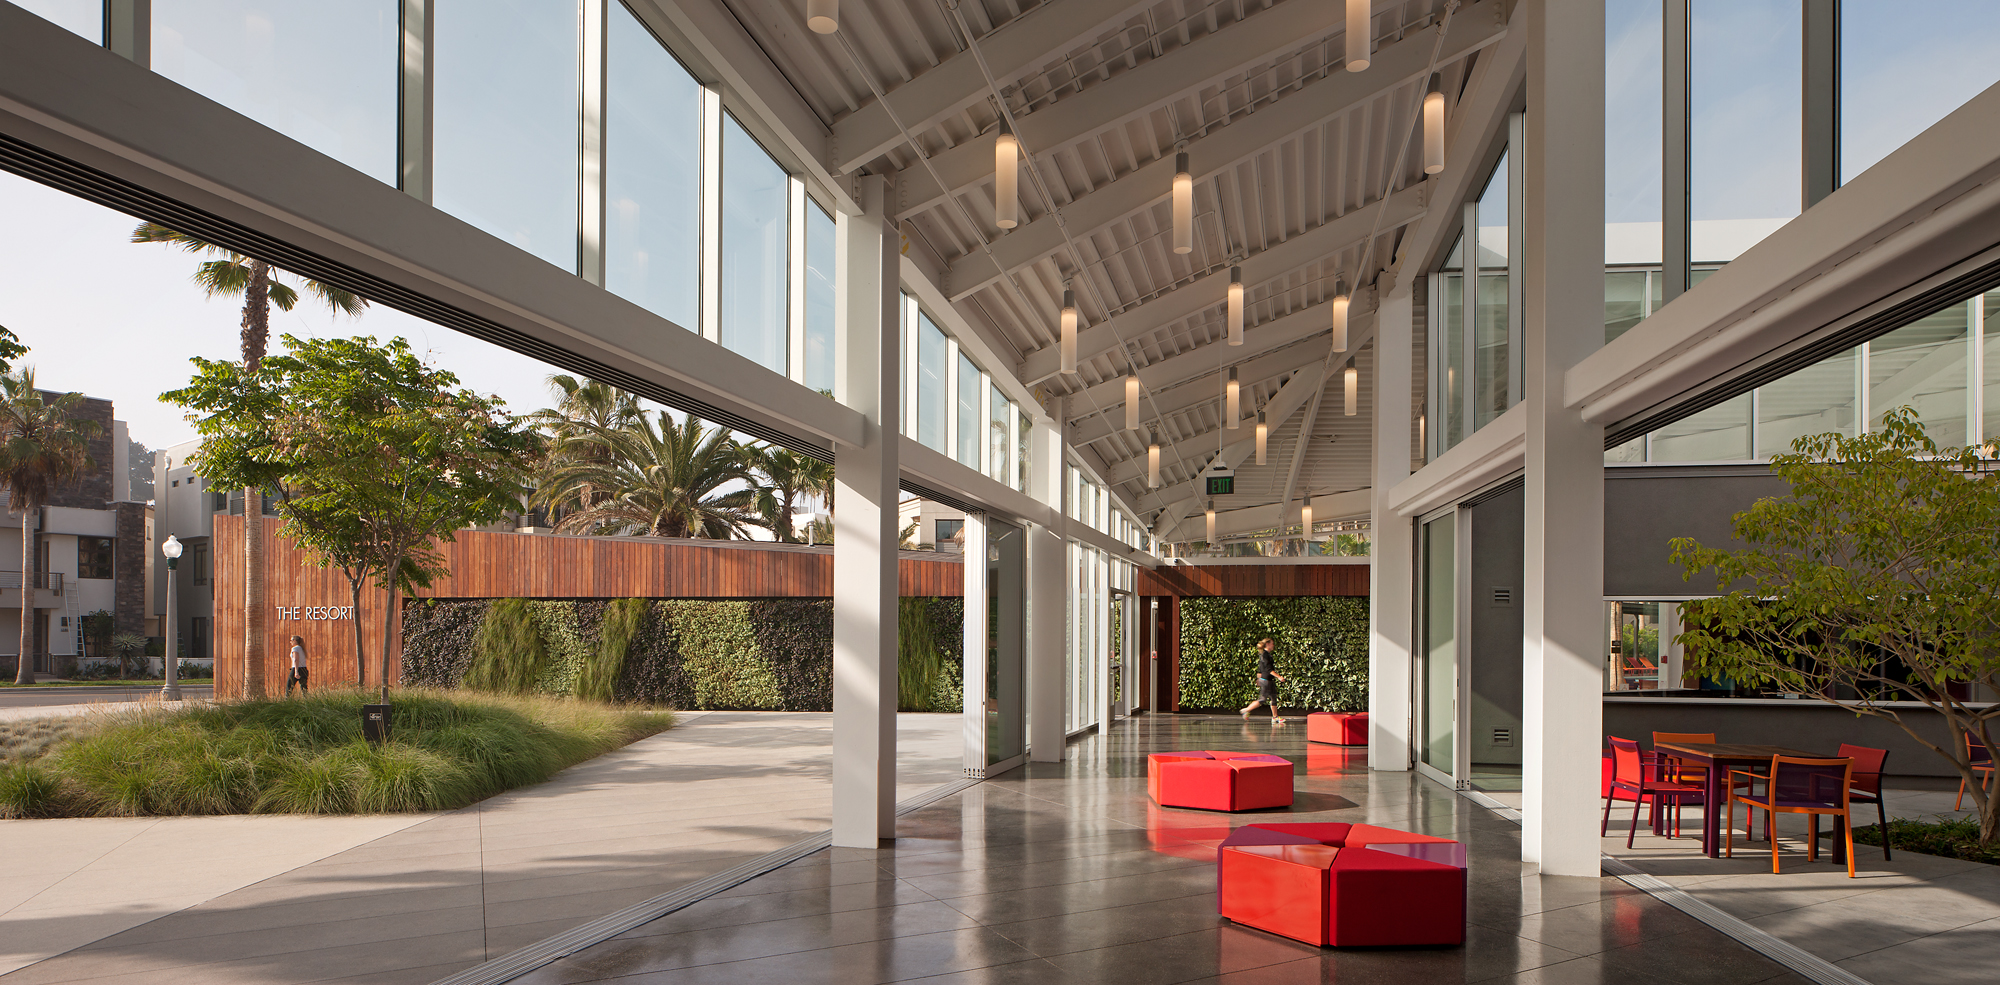 A_PVCC_OpenEntryway1_2000.jpg